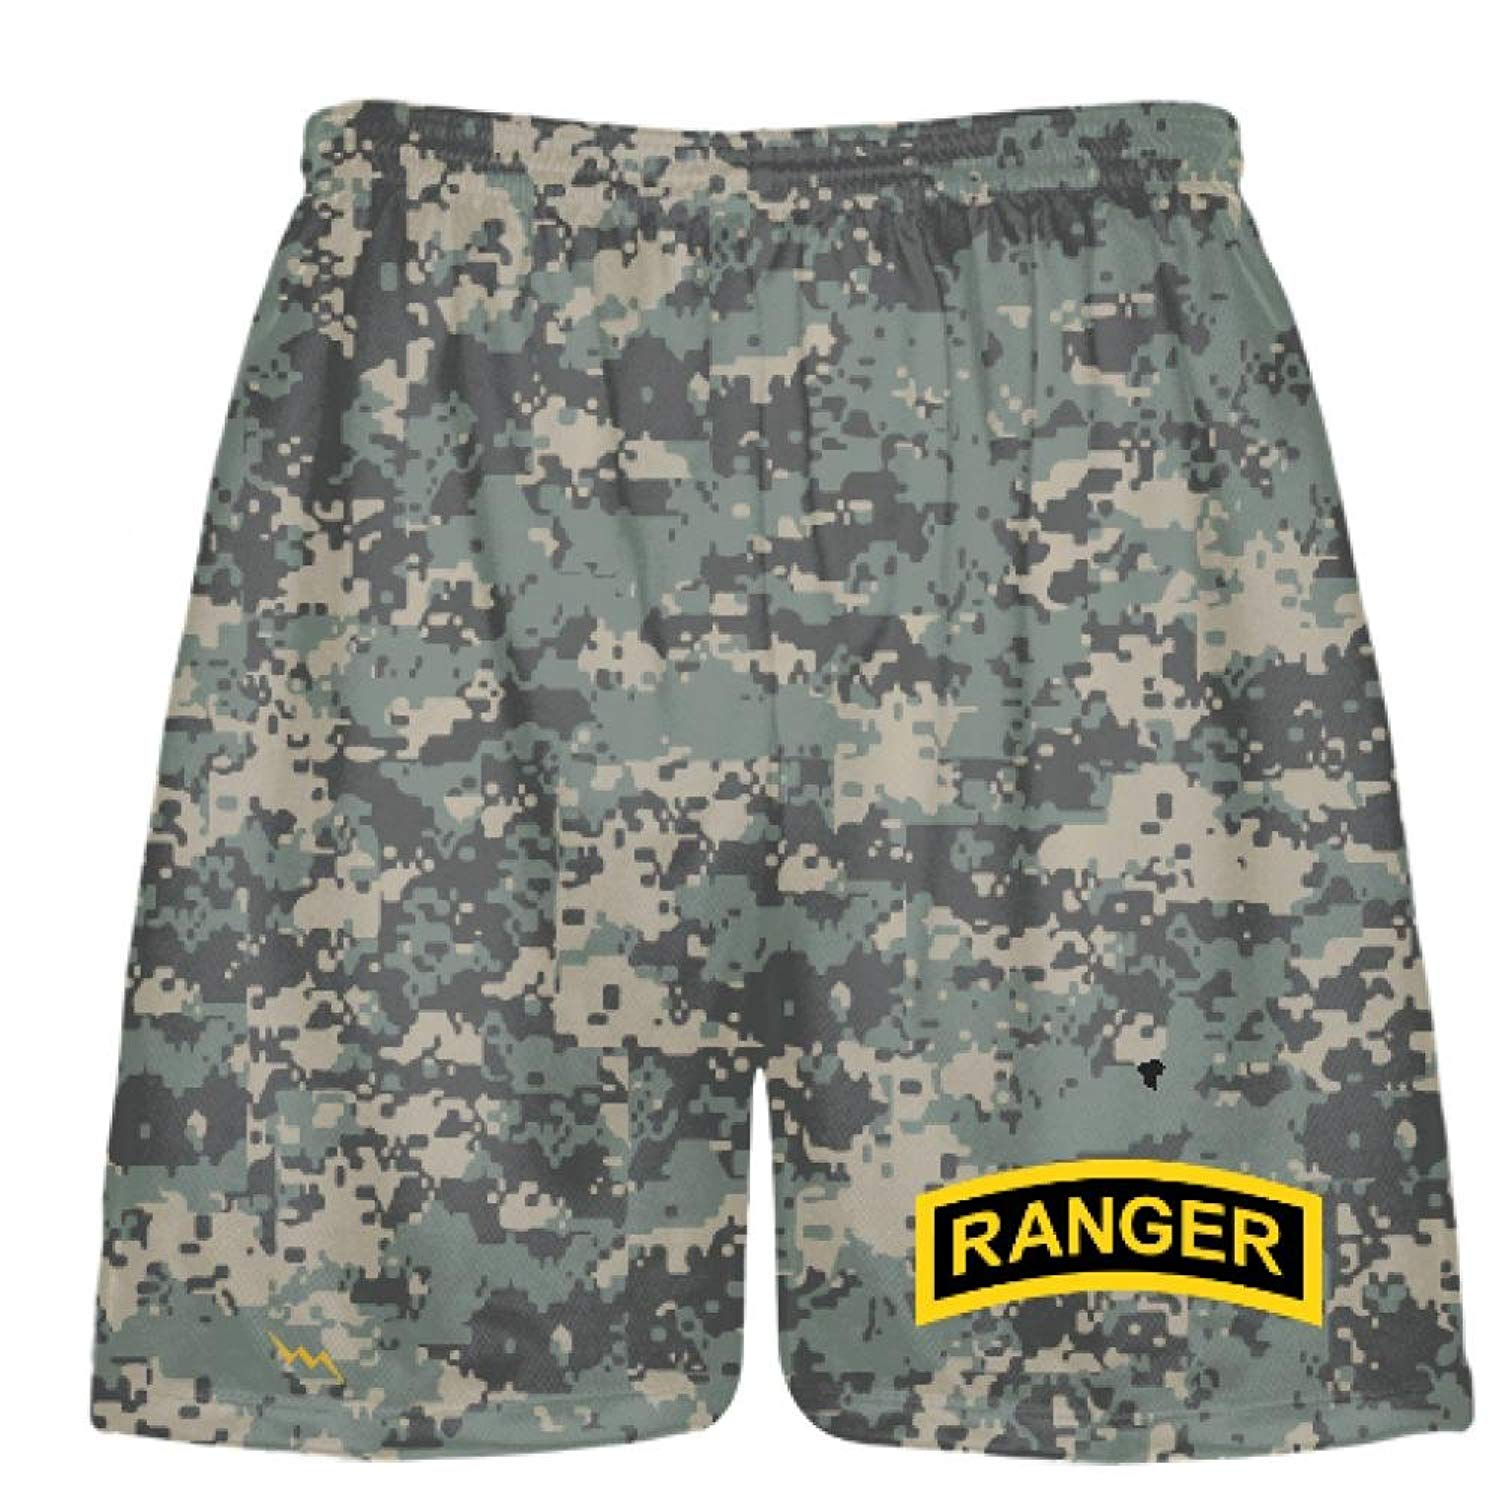 Army Veteran Special Forces Airborne Veteran 3D Print Mens Beach Shorts Swim Trunks Workout Shorts Summer Shorts U.S